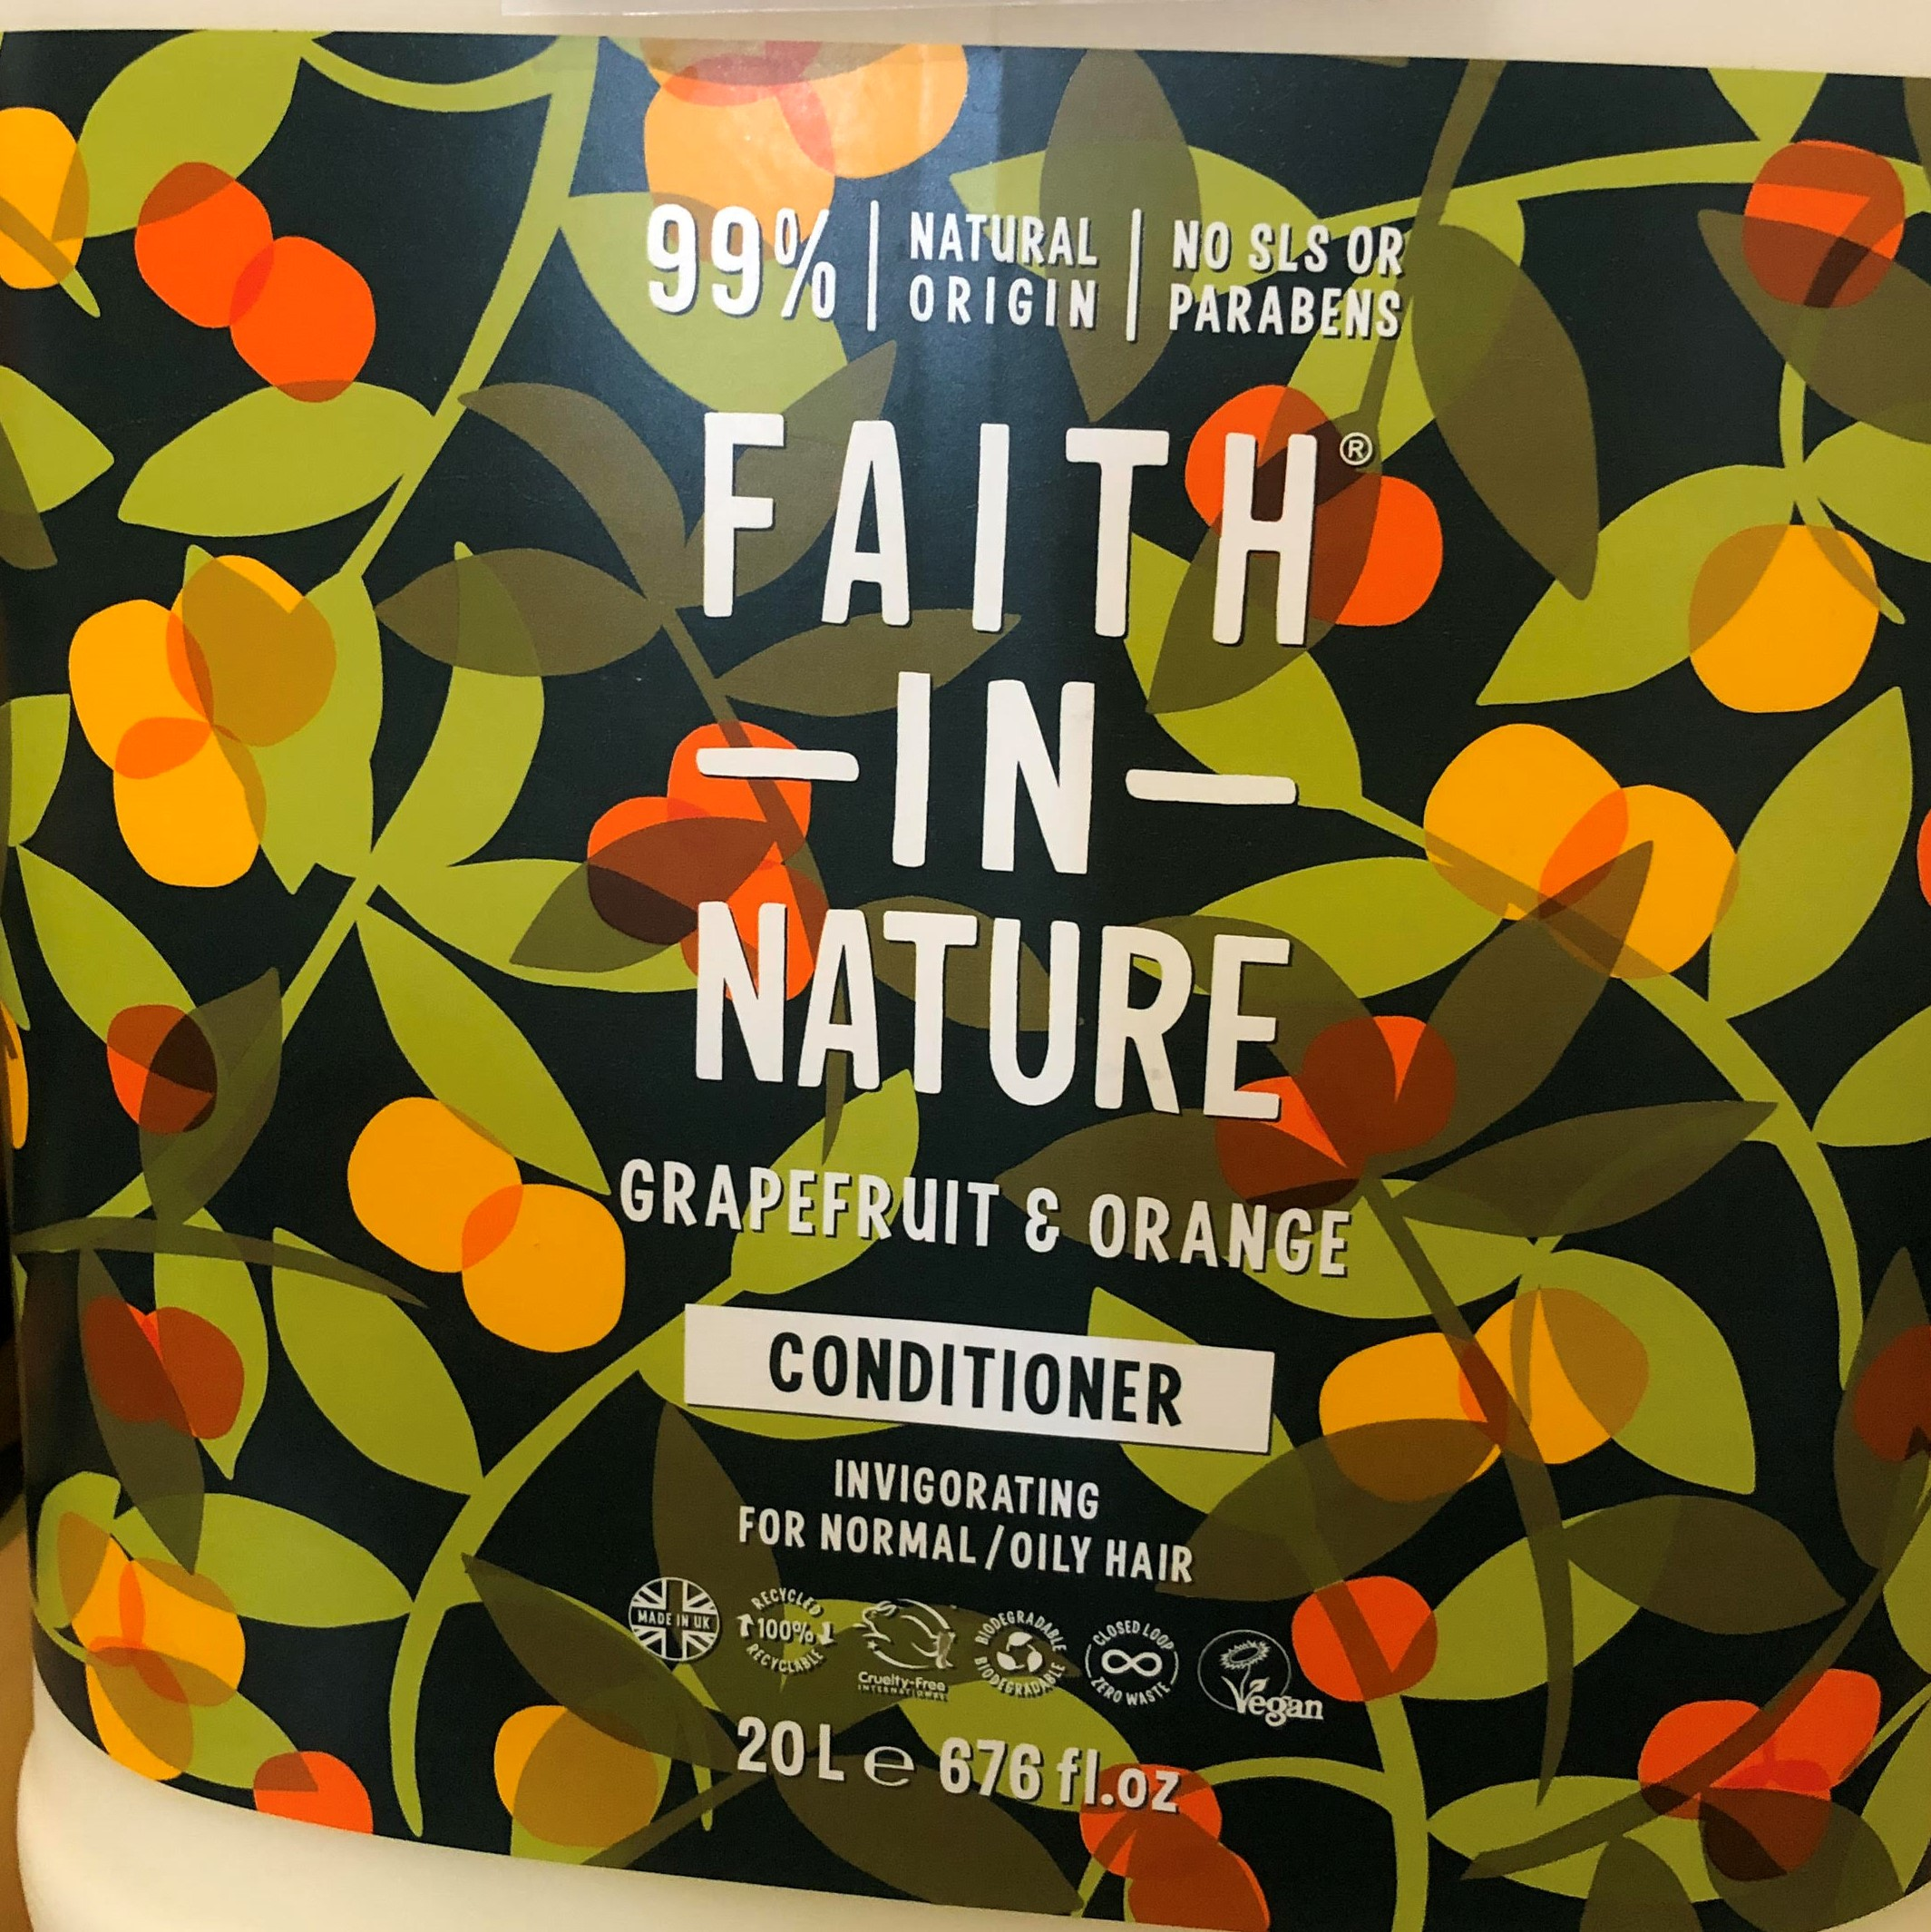 Conditioner (liquid only) by Faith in Nature